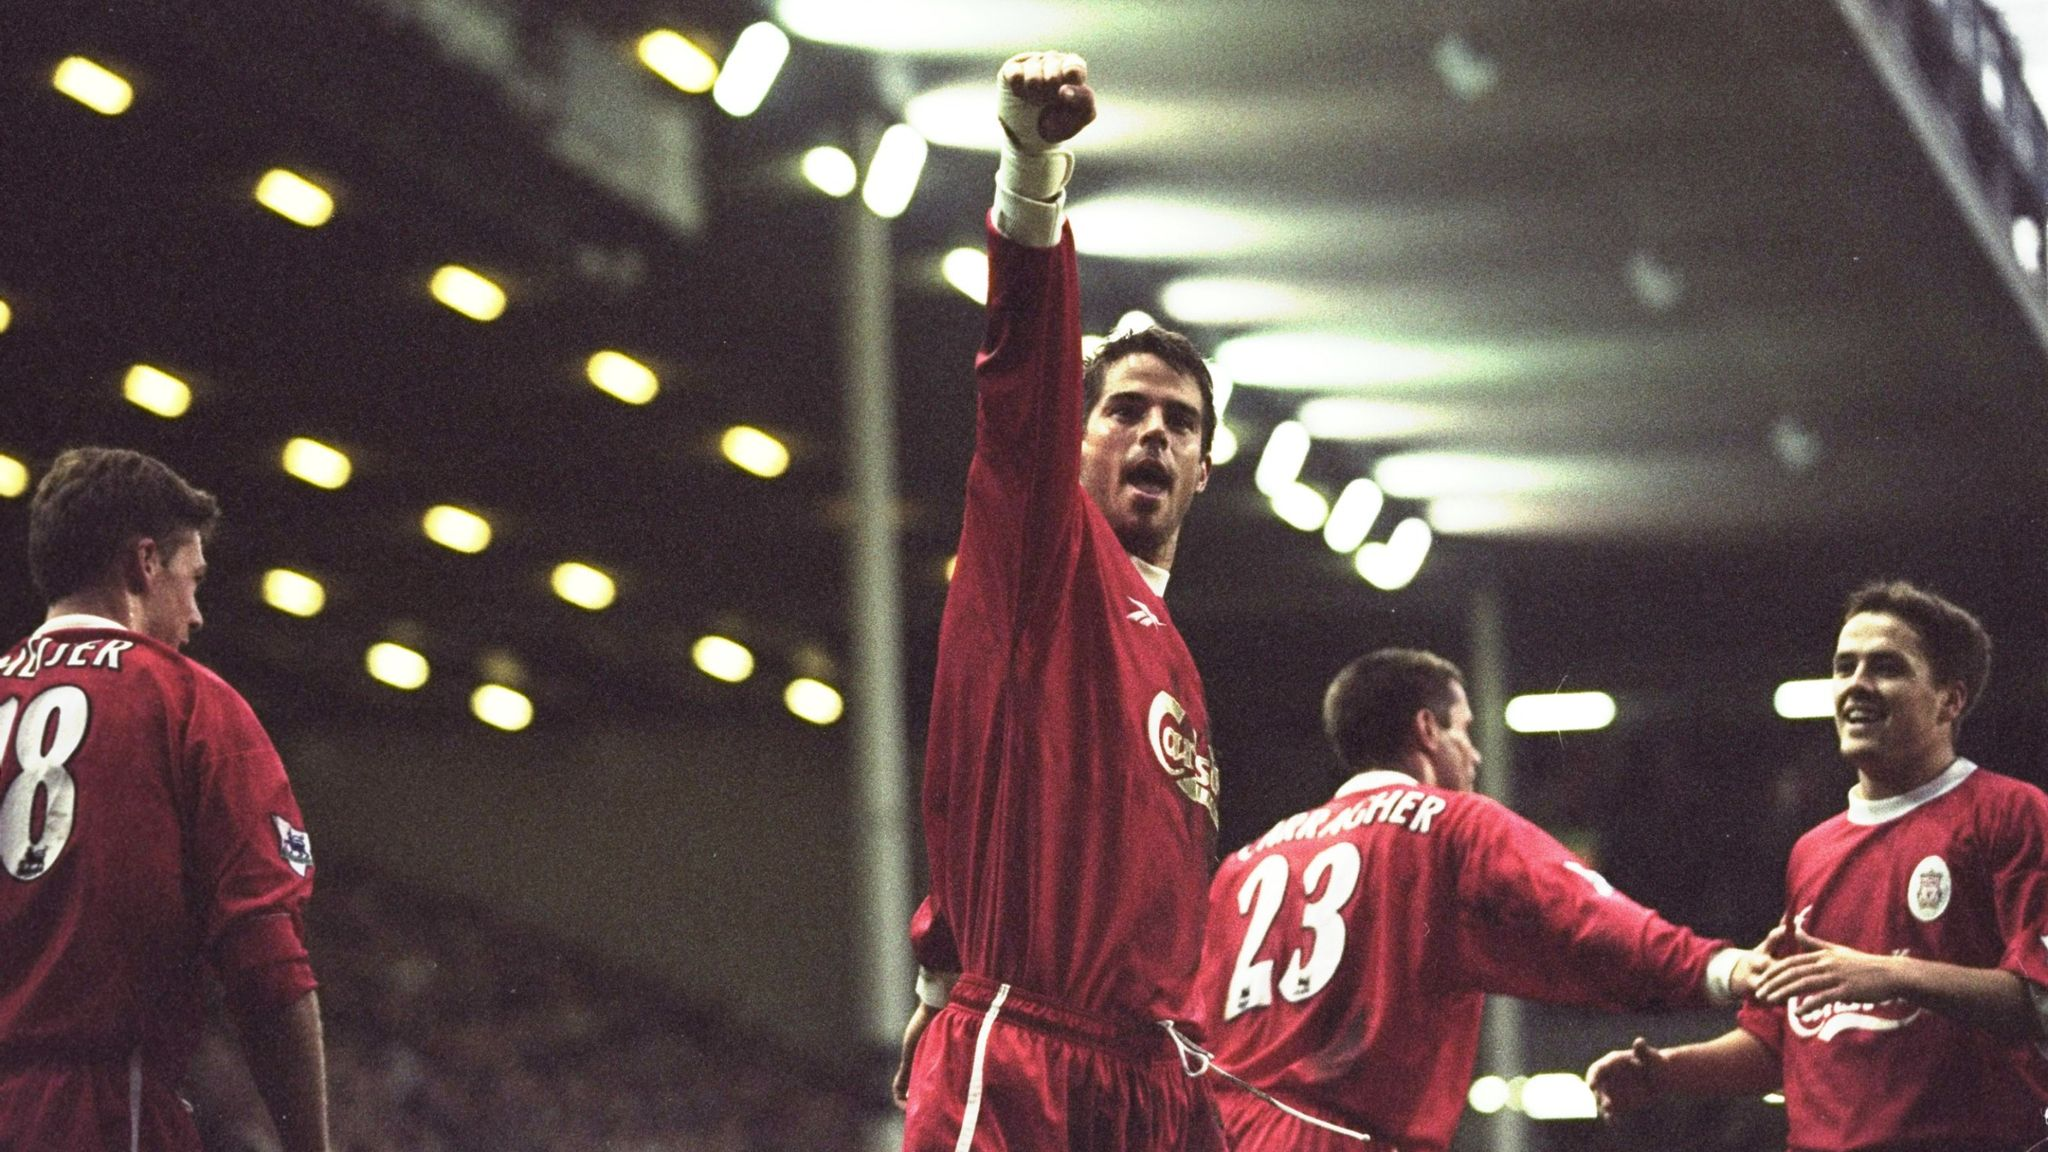 Off Script | The mental toll of early retirement, with Jamie Redknapp and Alan Smith